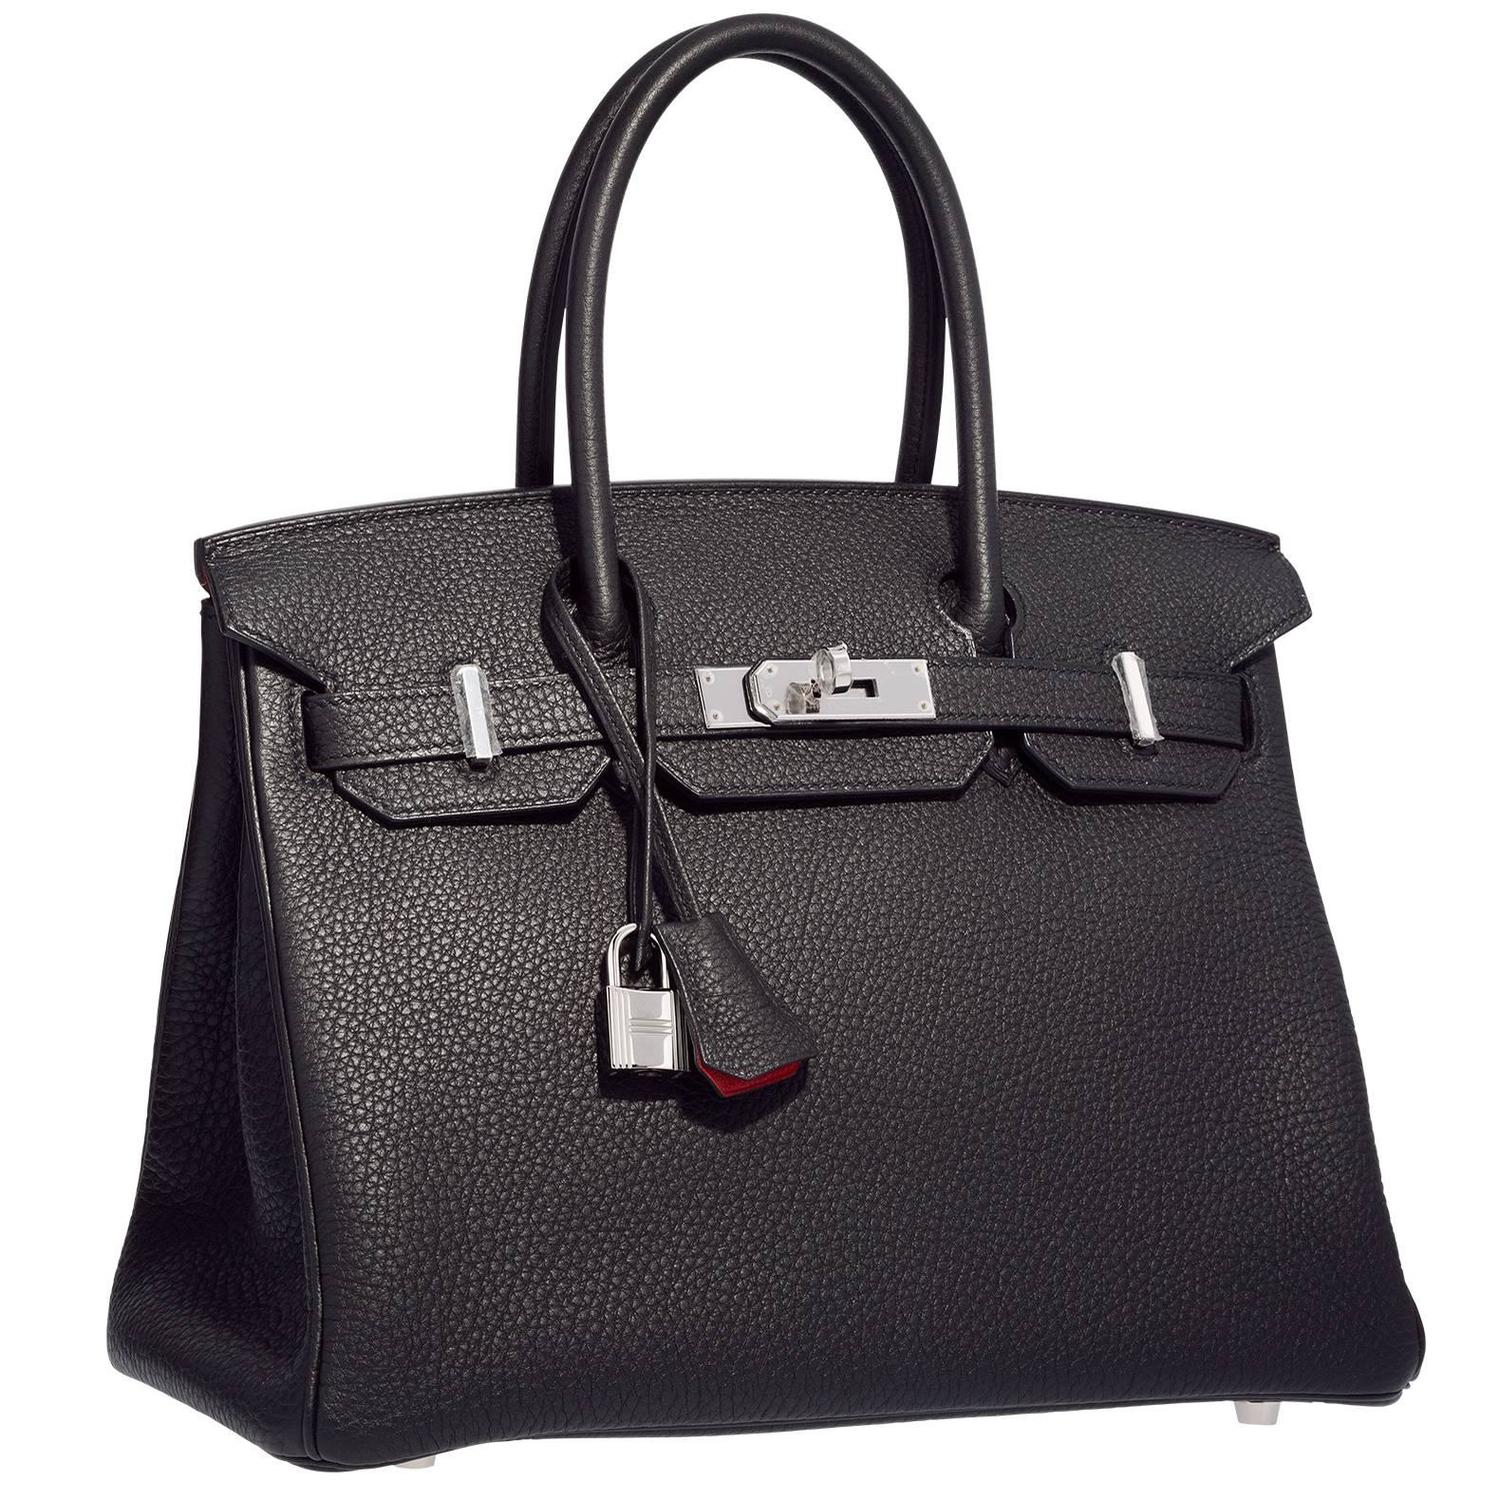 4f11fdf2317 Hermes 30cm Black and Rouge H Togo Leather Birkin Bag with .